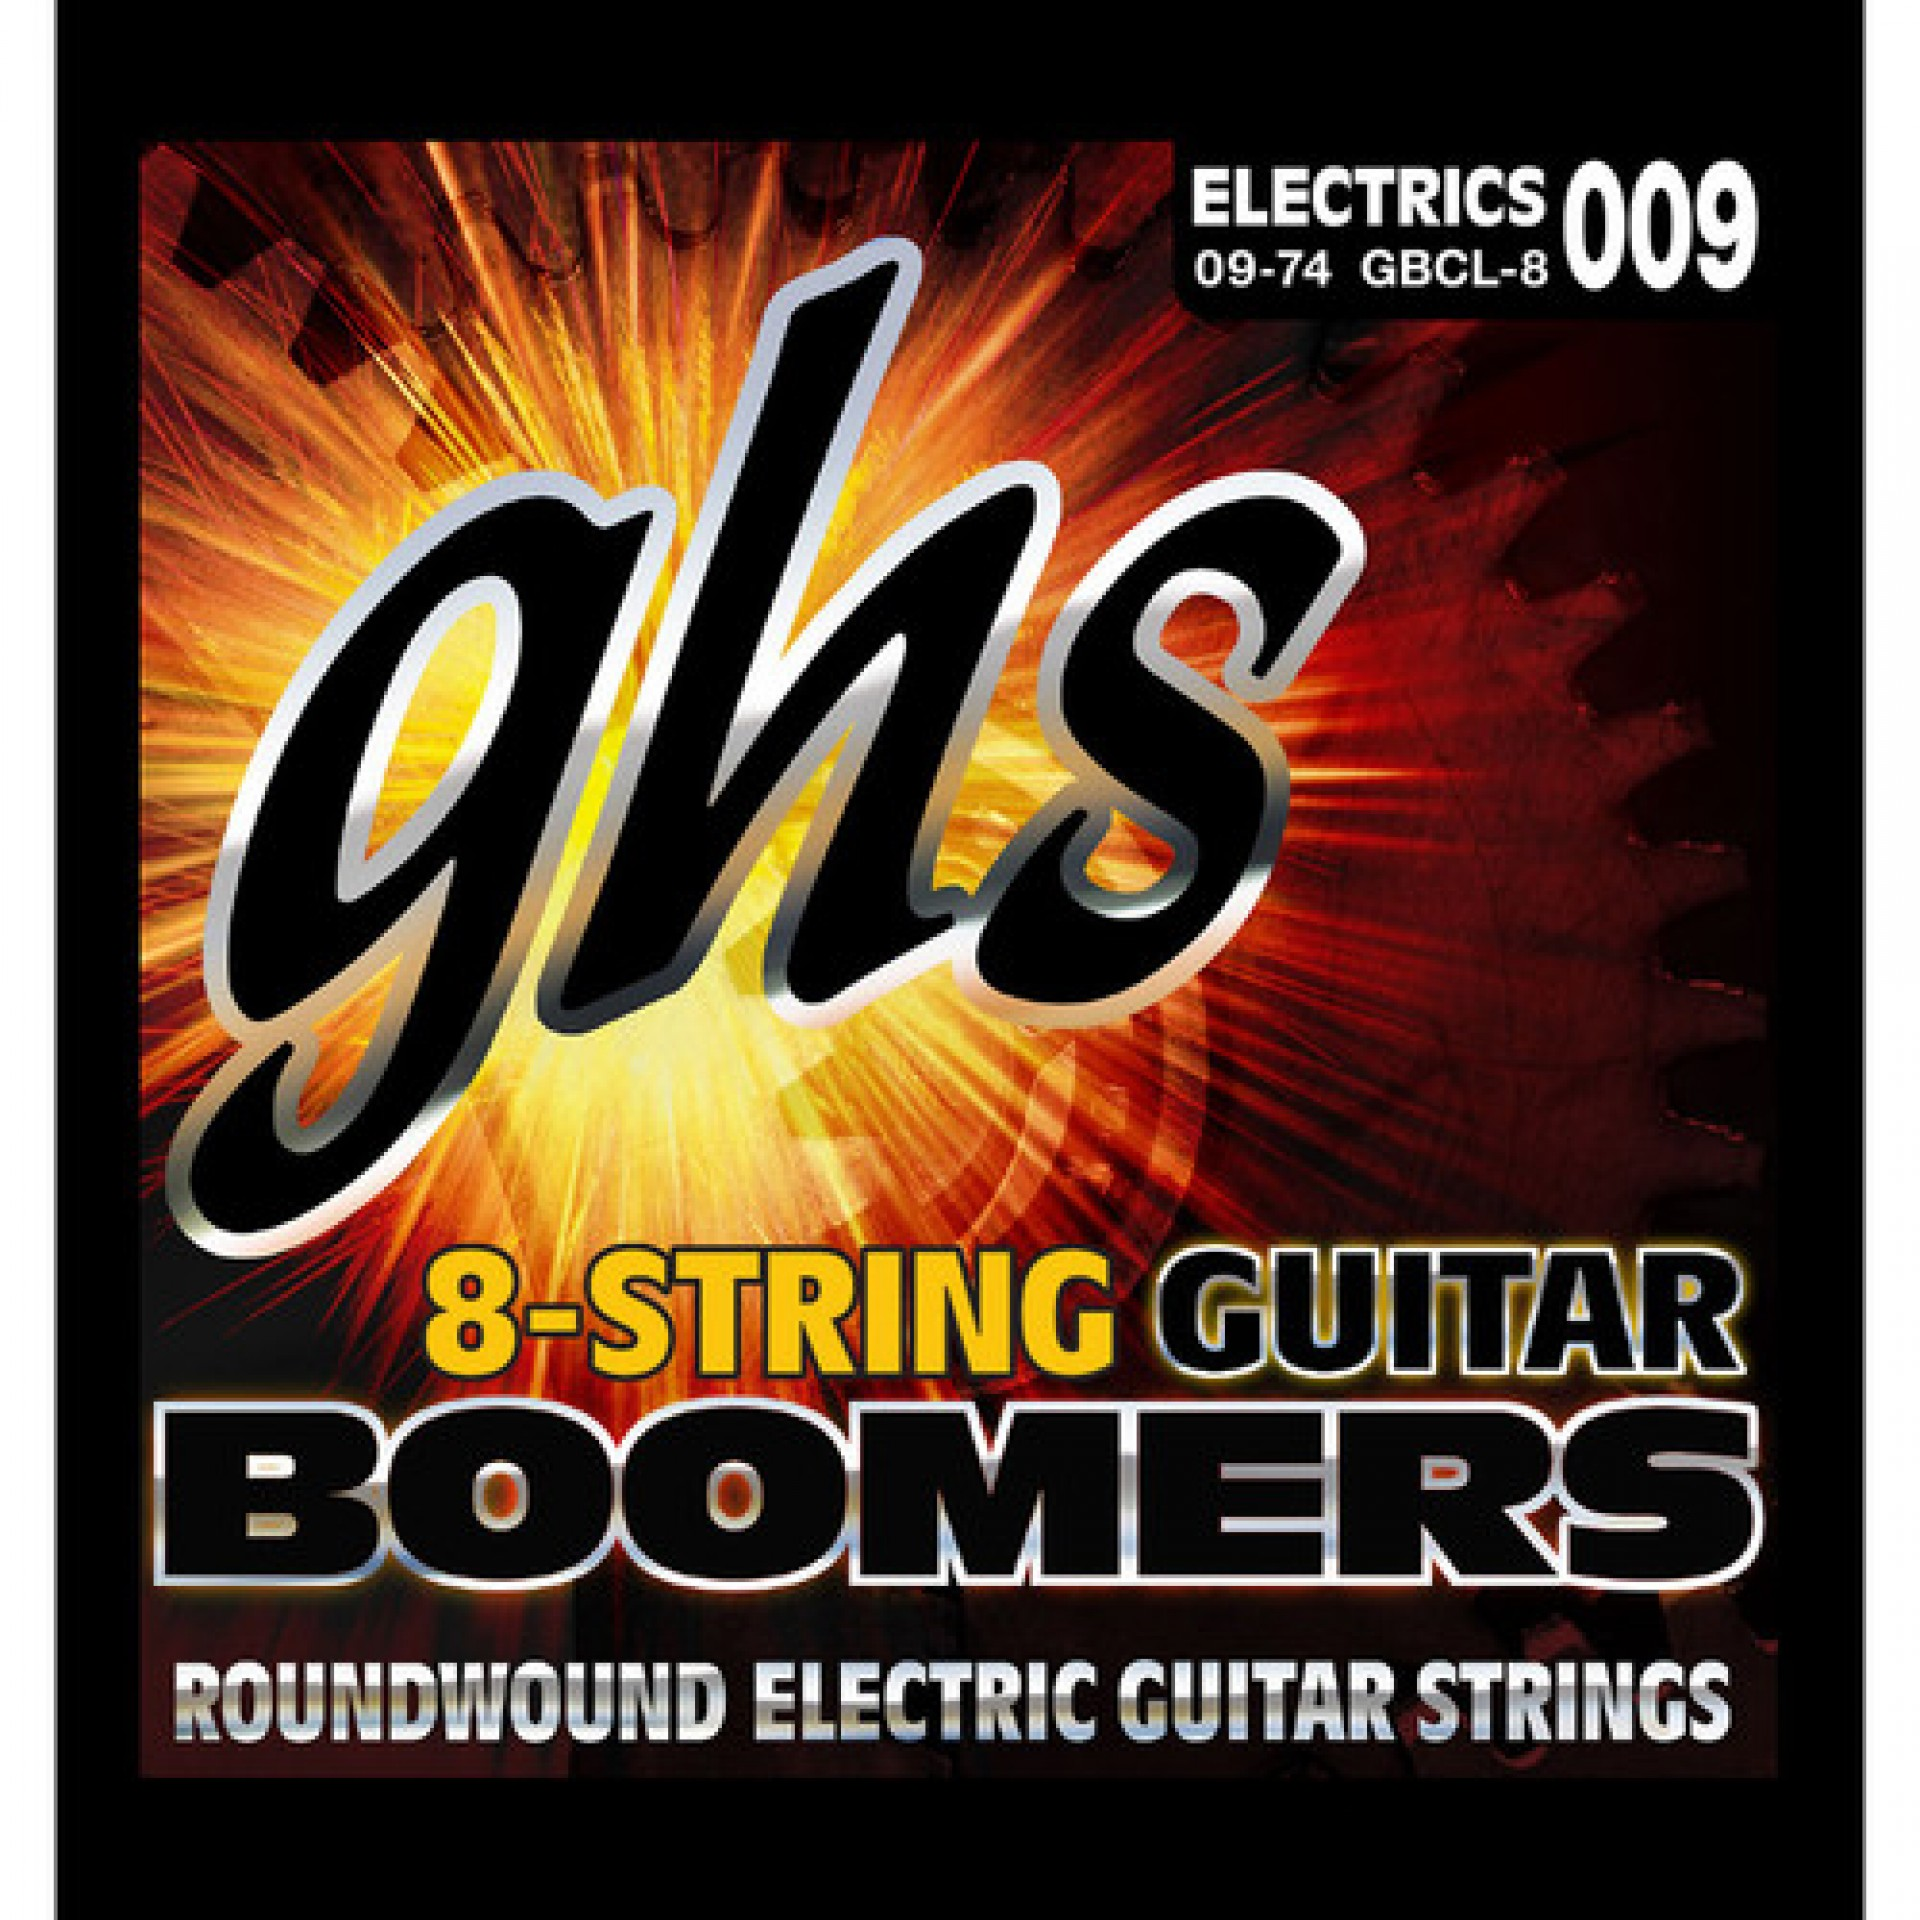 GHS GBCL-8 Boomers Custom Light Roundwound Electric Guitar Strings (8-String Set, 9 - 74)